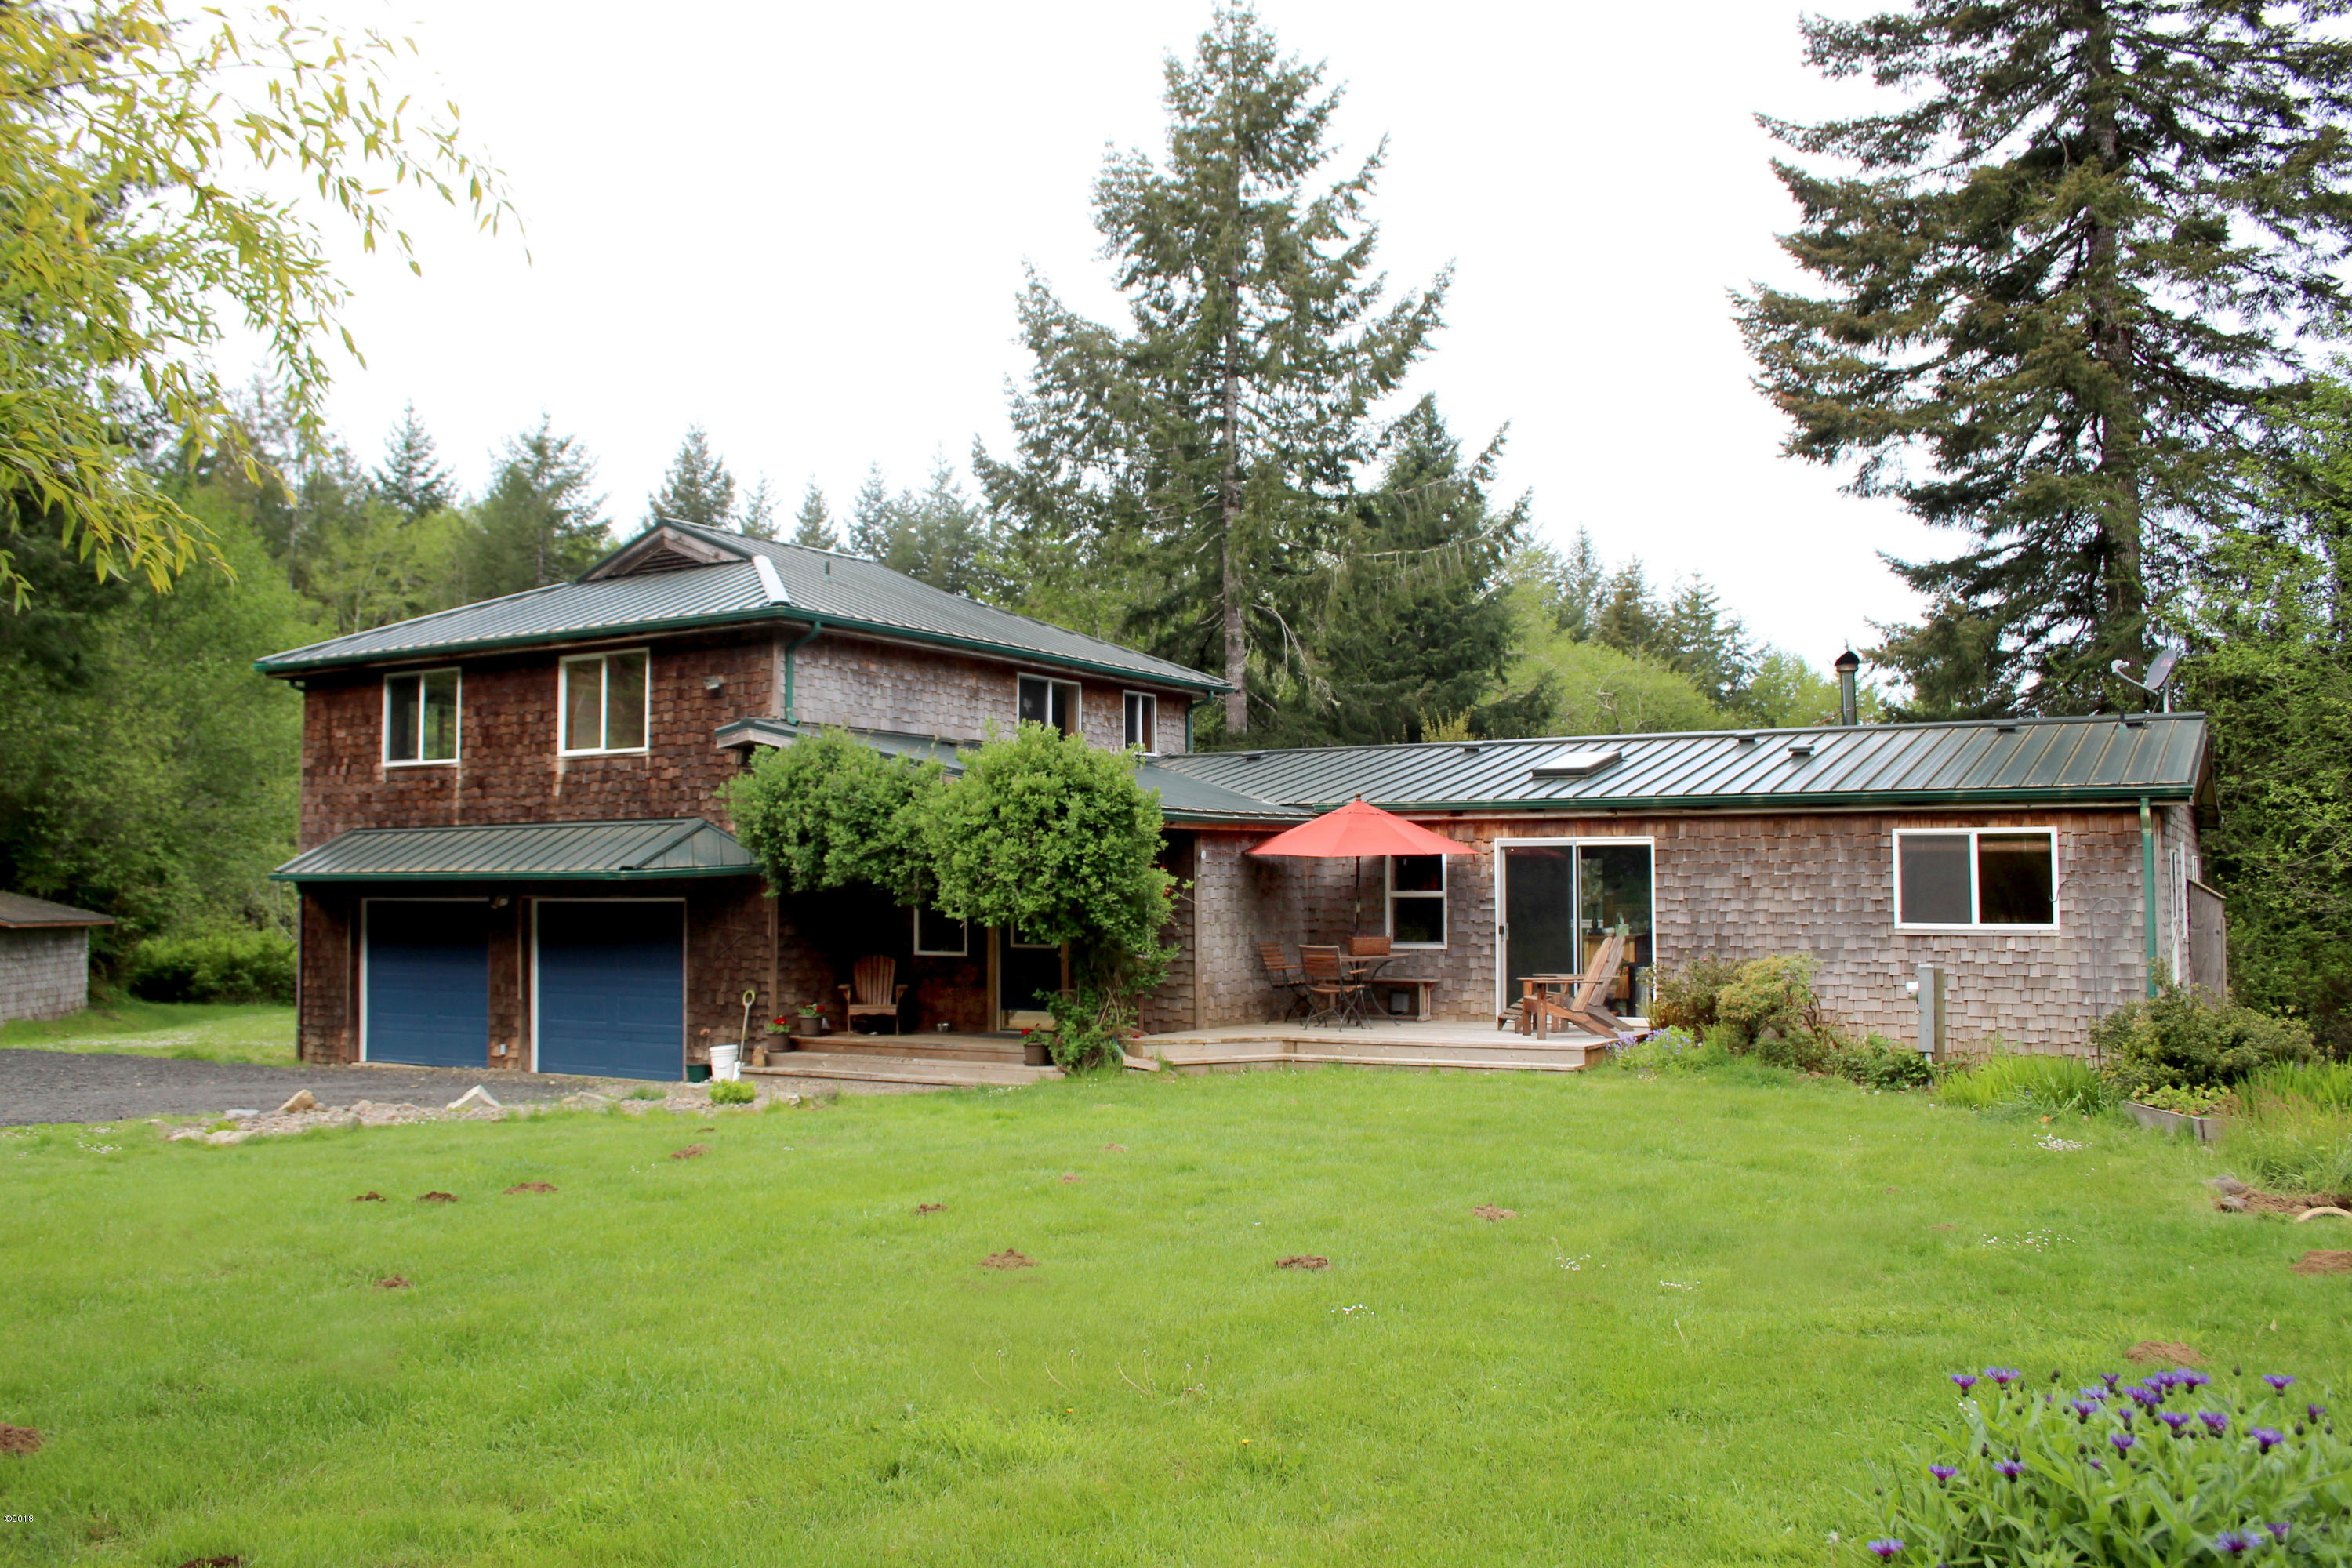 1266 N Yachats River Rd, Yachats, OR 97498 - The Home